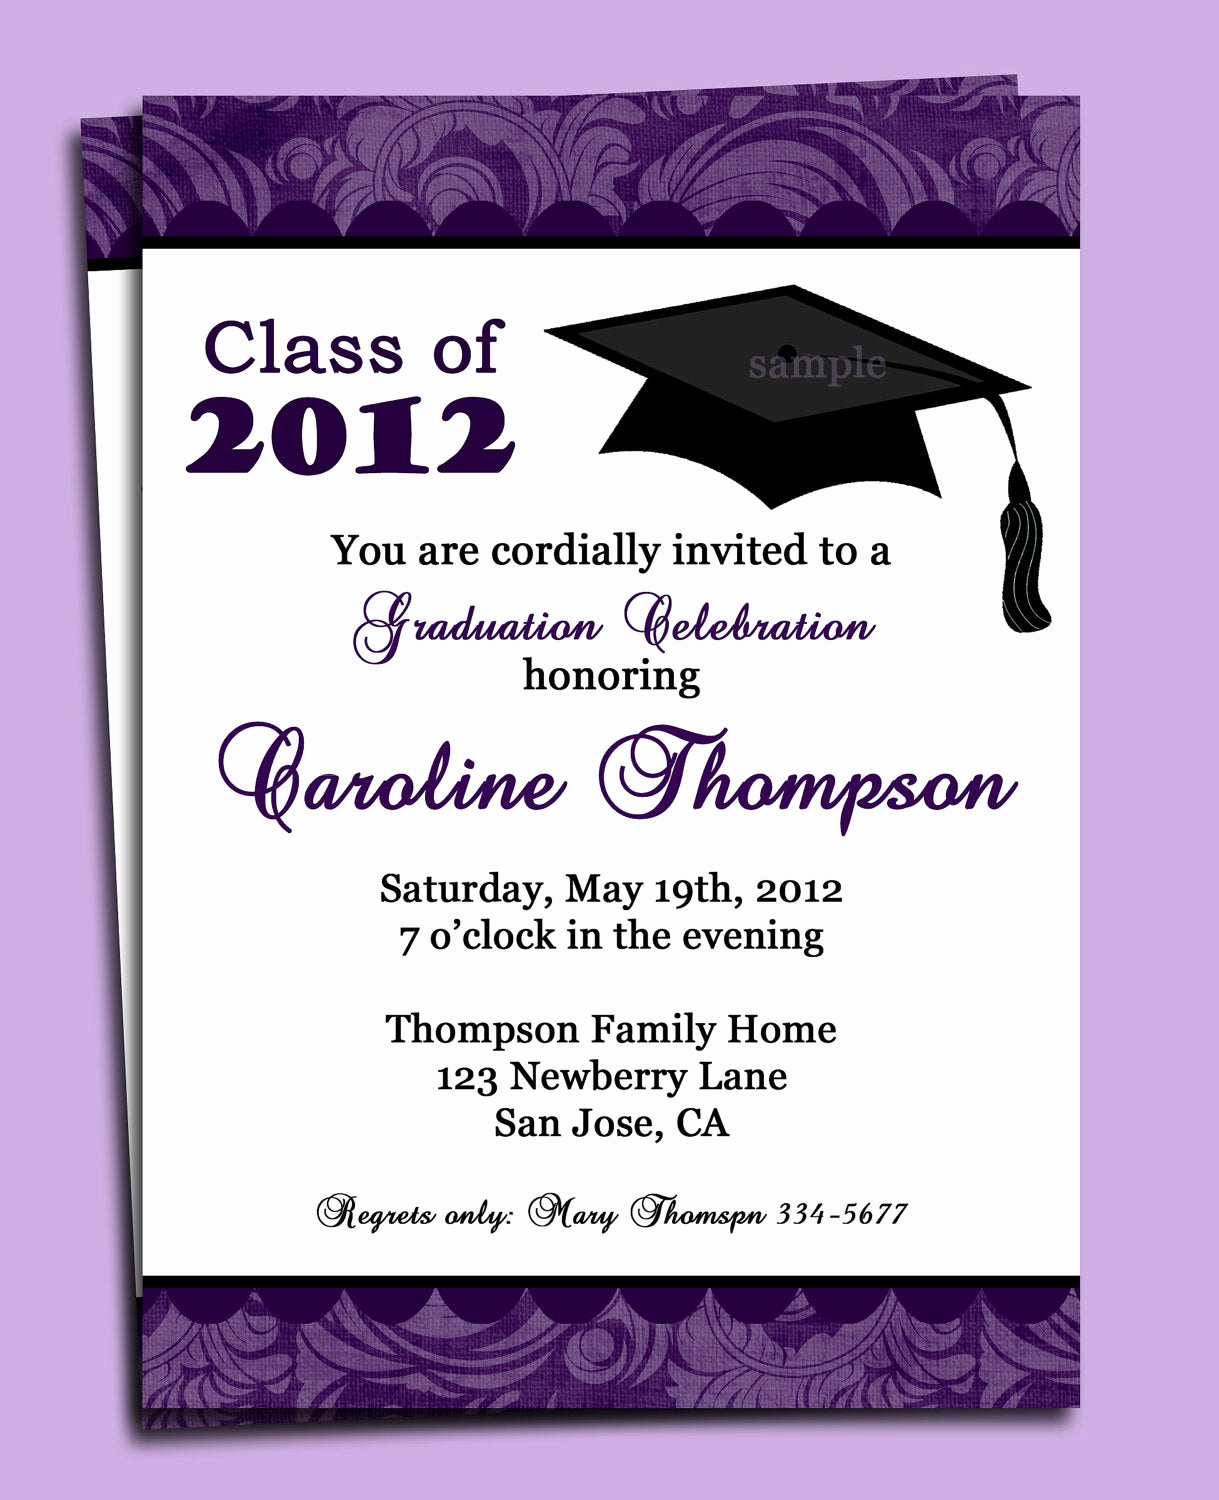 College Graduation Invitation Ideas New Graduation Party or Announcement Invitation Printable or